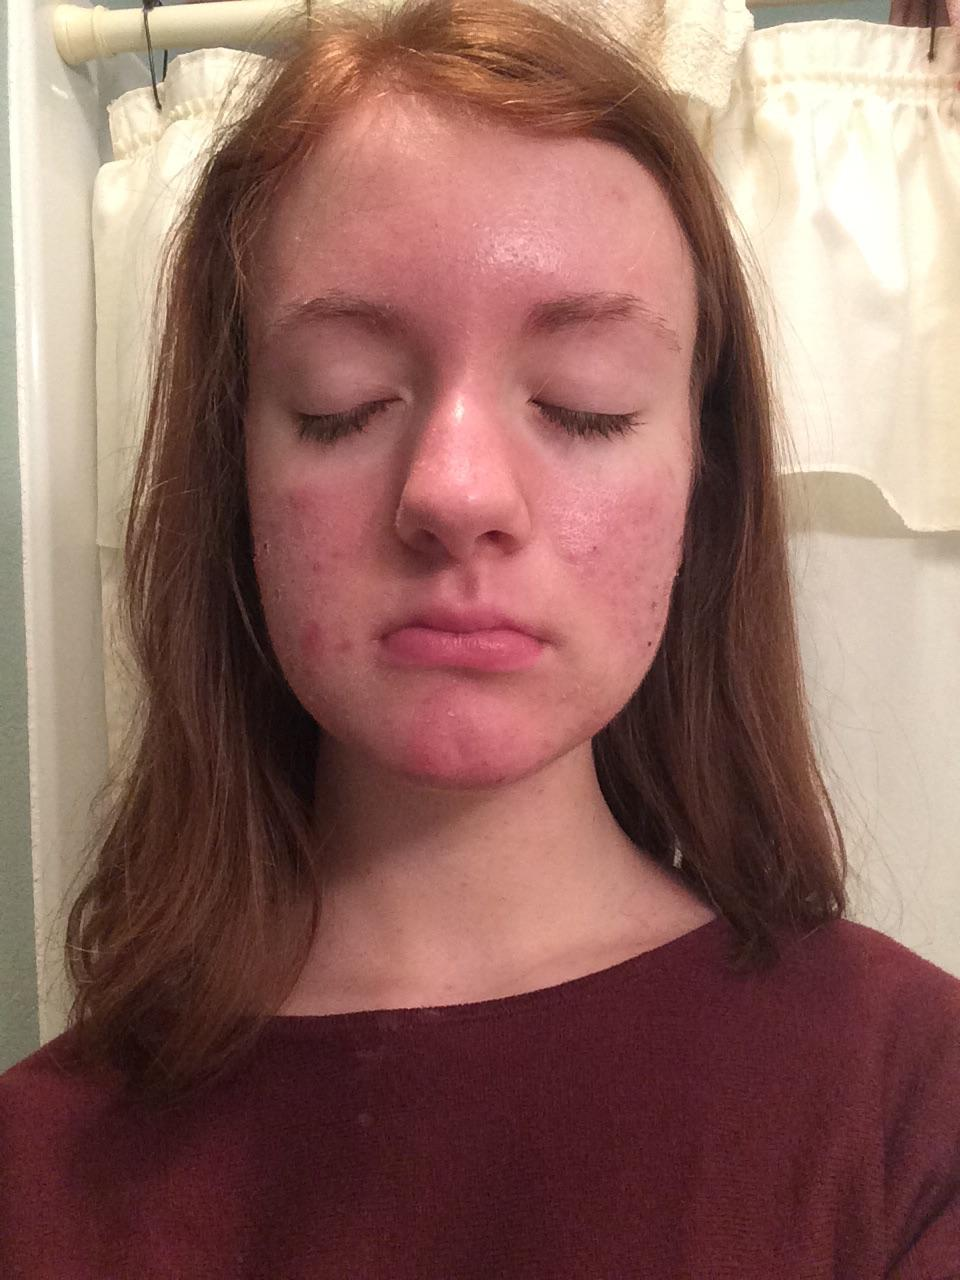 Natural remedies for post acne marks 4th grade taghypertrophic scar reduction treatment ukhow to get rid of acne scar on your backhow to get rid of acne forever home remedies pregnancyhow to get rid ccuart Choice Image